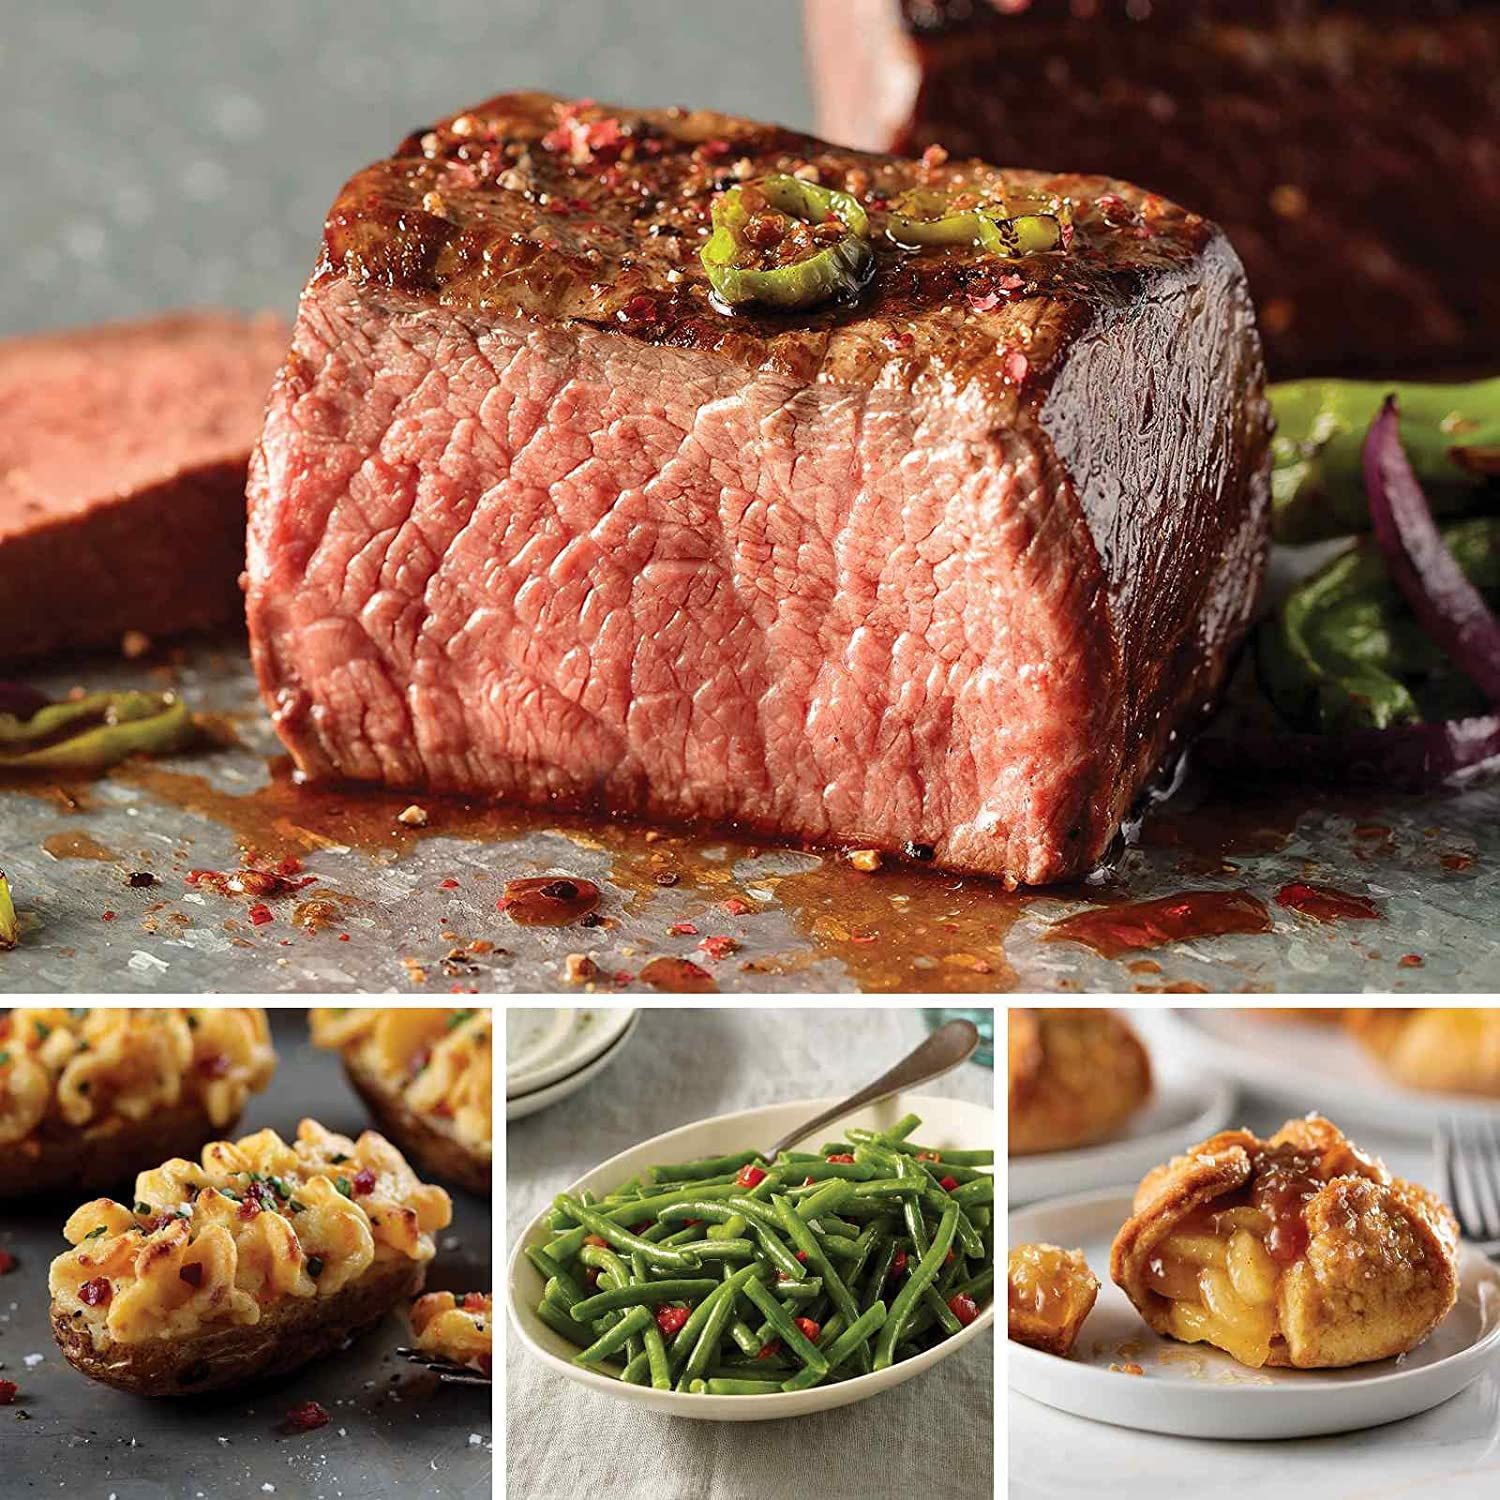 Omaha Steaks the Holiday Helper (14-Piece with Top Sirloins, Stuffed Baked Potatoes, Green Beans, and Individual Caramel Apple Tartlets)